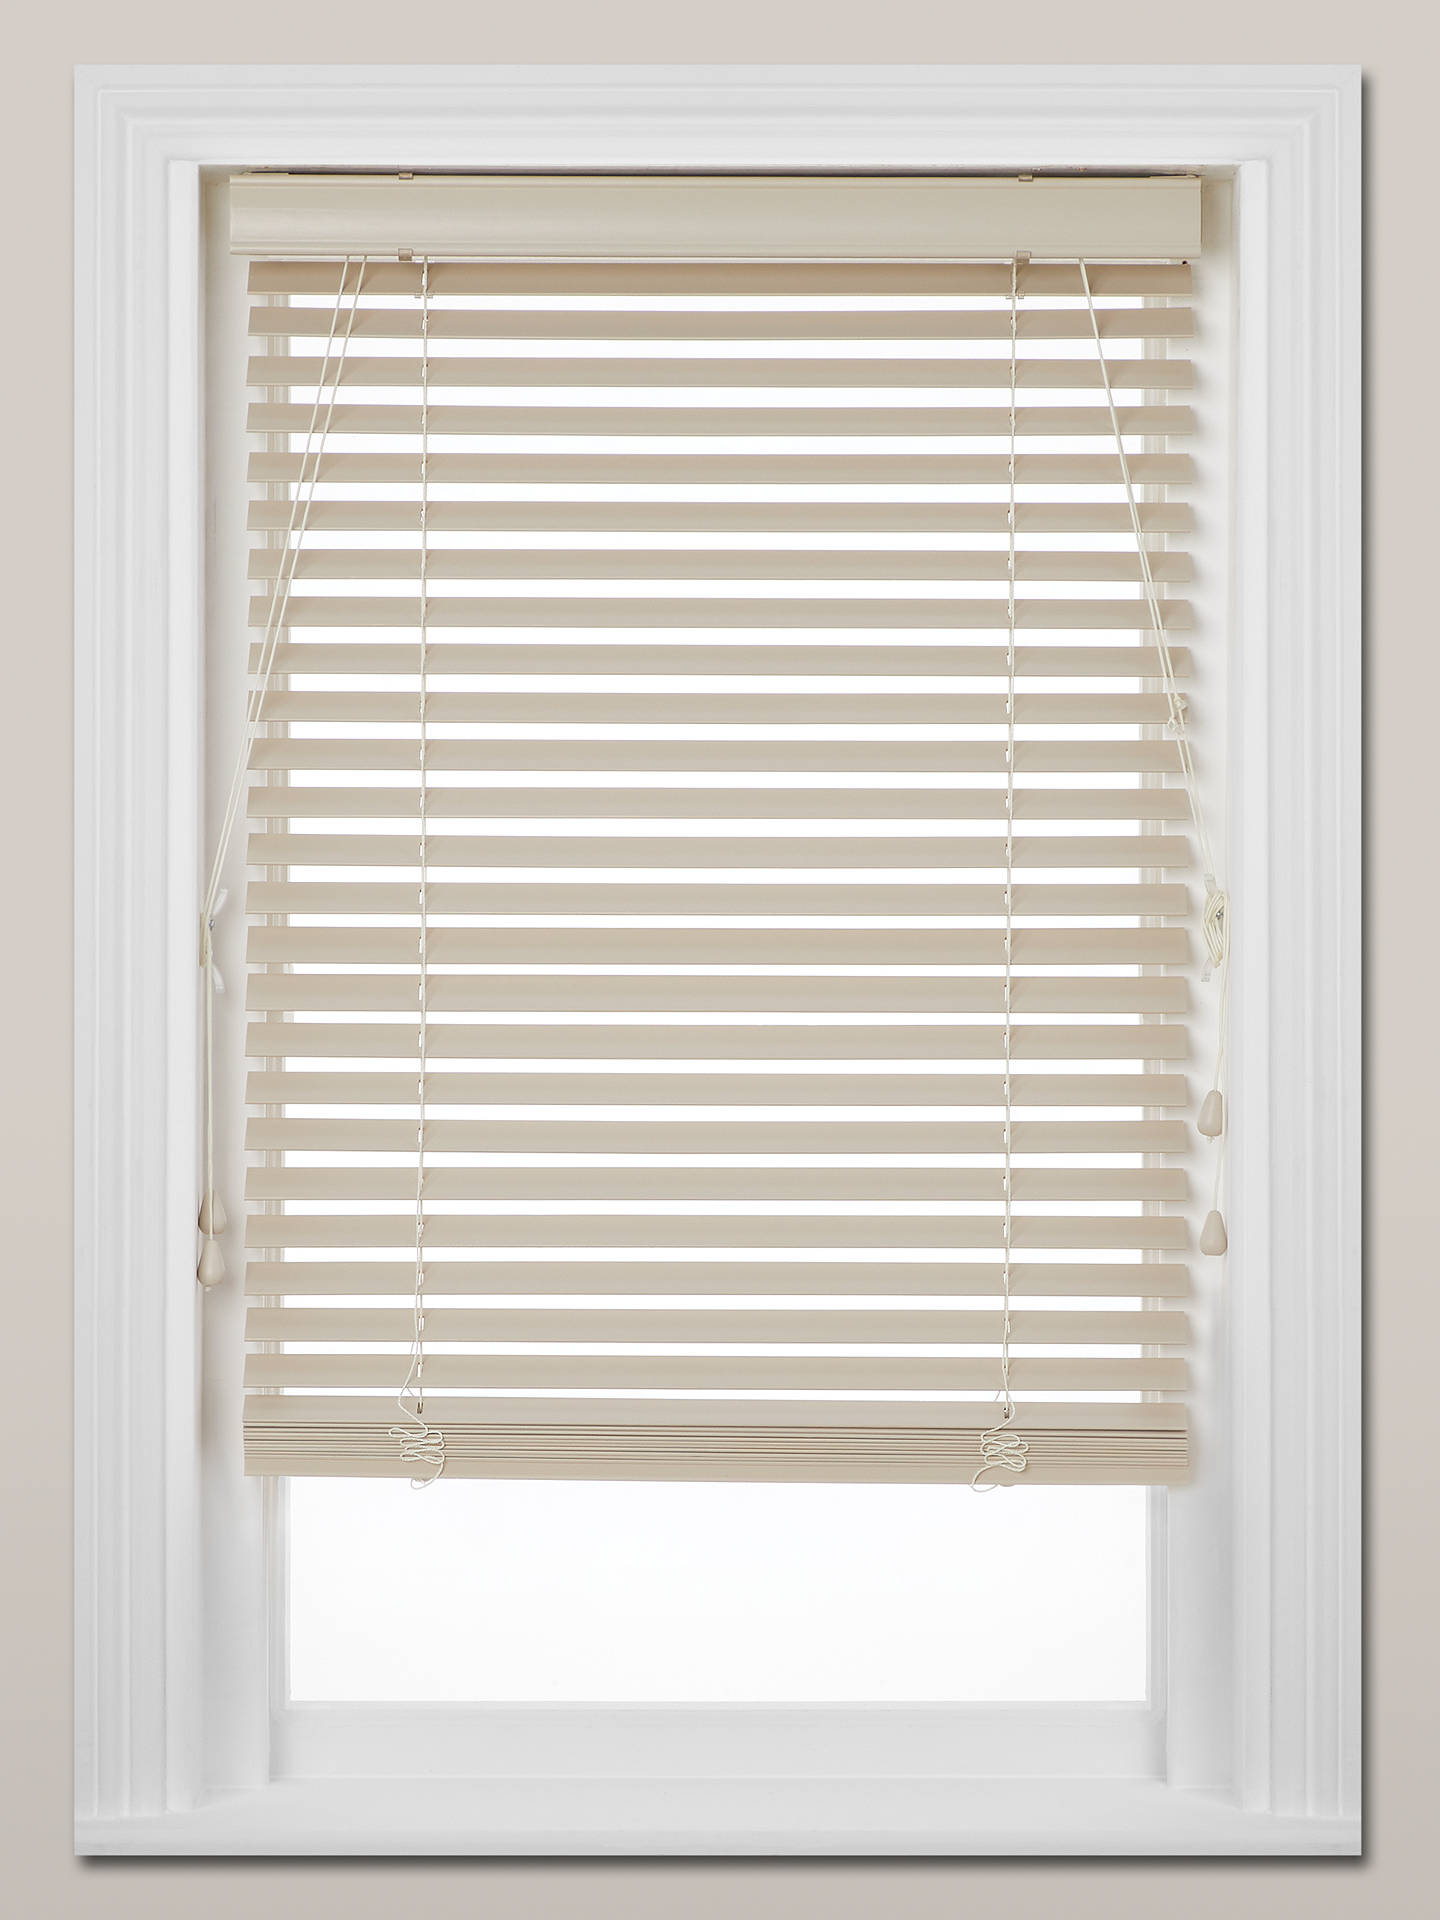 Buy John Lewis & Partners Made to Measure Faux Wood Venetian Blinds, Cream, 35mm Online at johnlewis.com